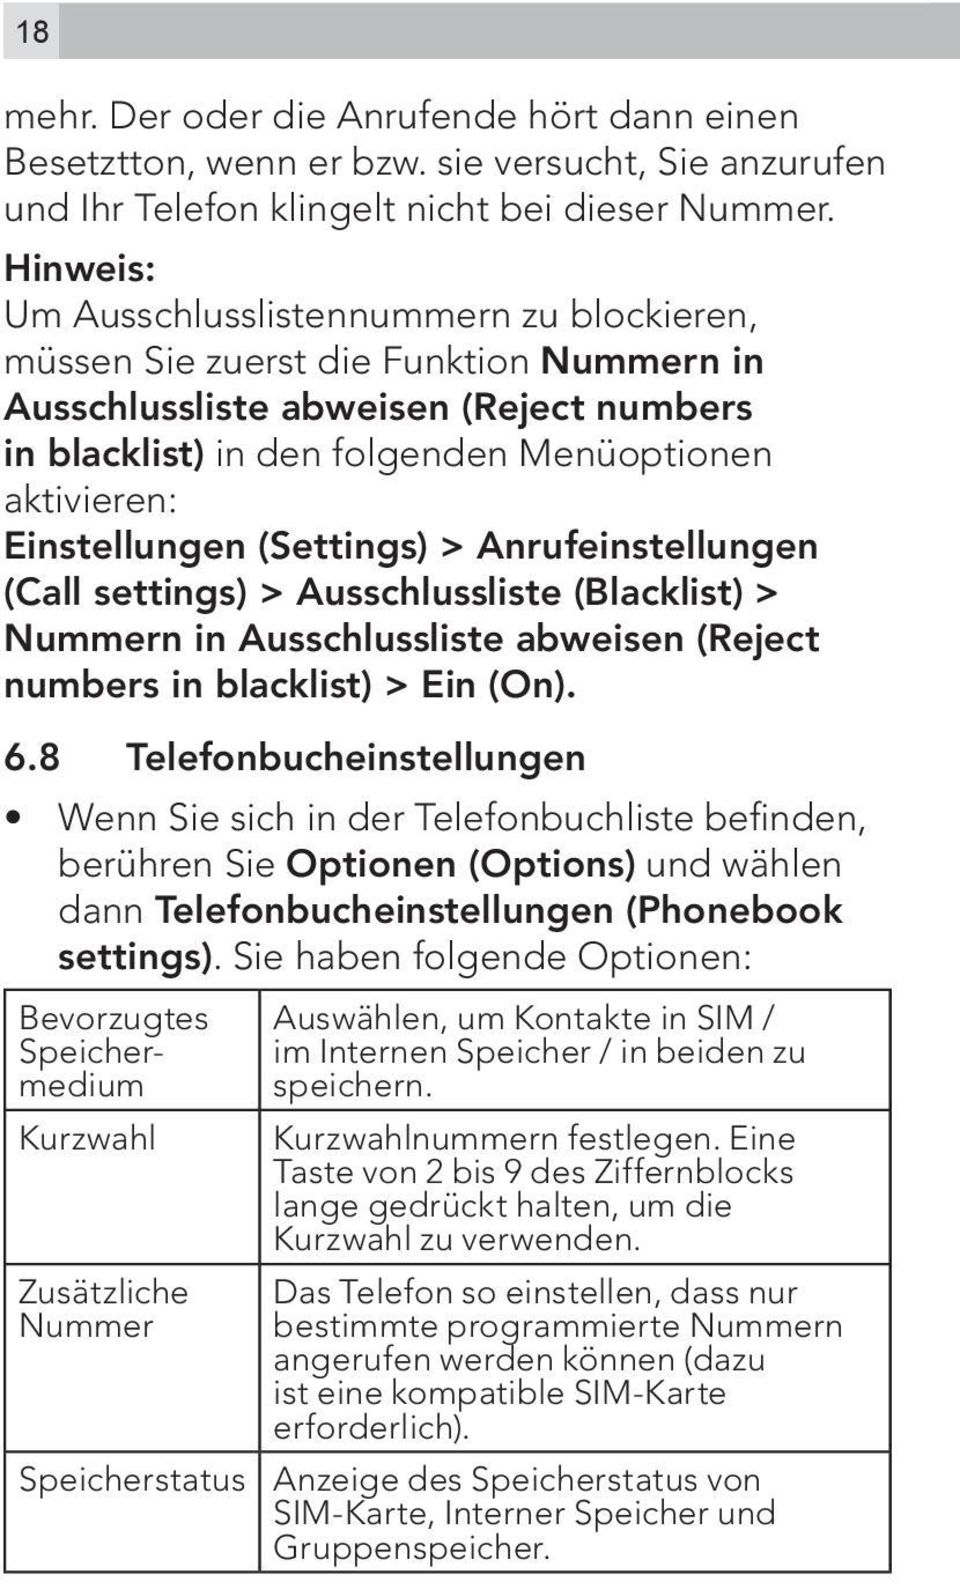 Einstellungen (Settings) > Anrufeinstellungen (Call settings) > Ausschlussliste (Blacklist) > Nummern in Ausschlussliste abweisen (Reject numbers in blacklist) > Ein (On). 6.